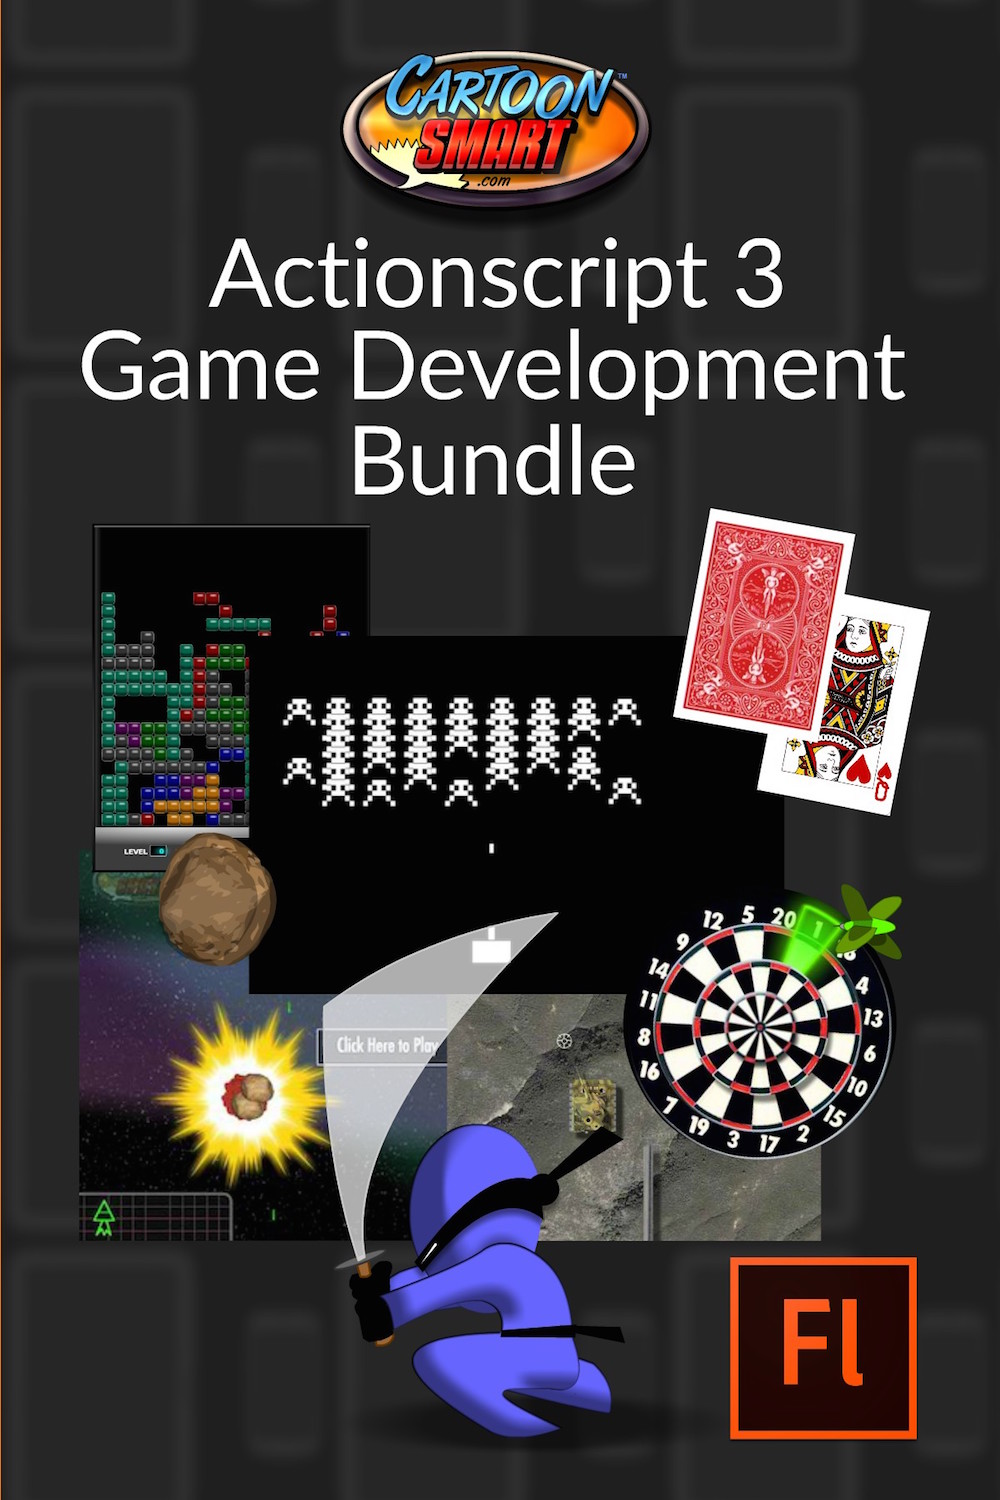 Actionscript 3 game development tutorials – subscriber access.